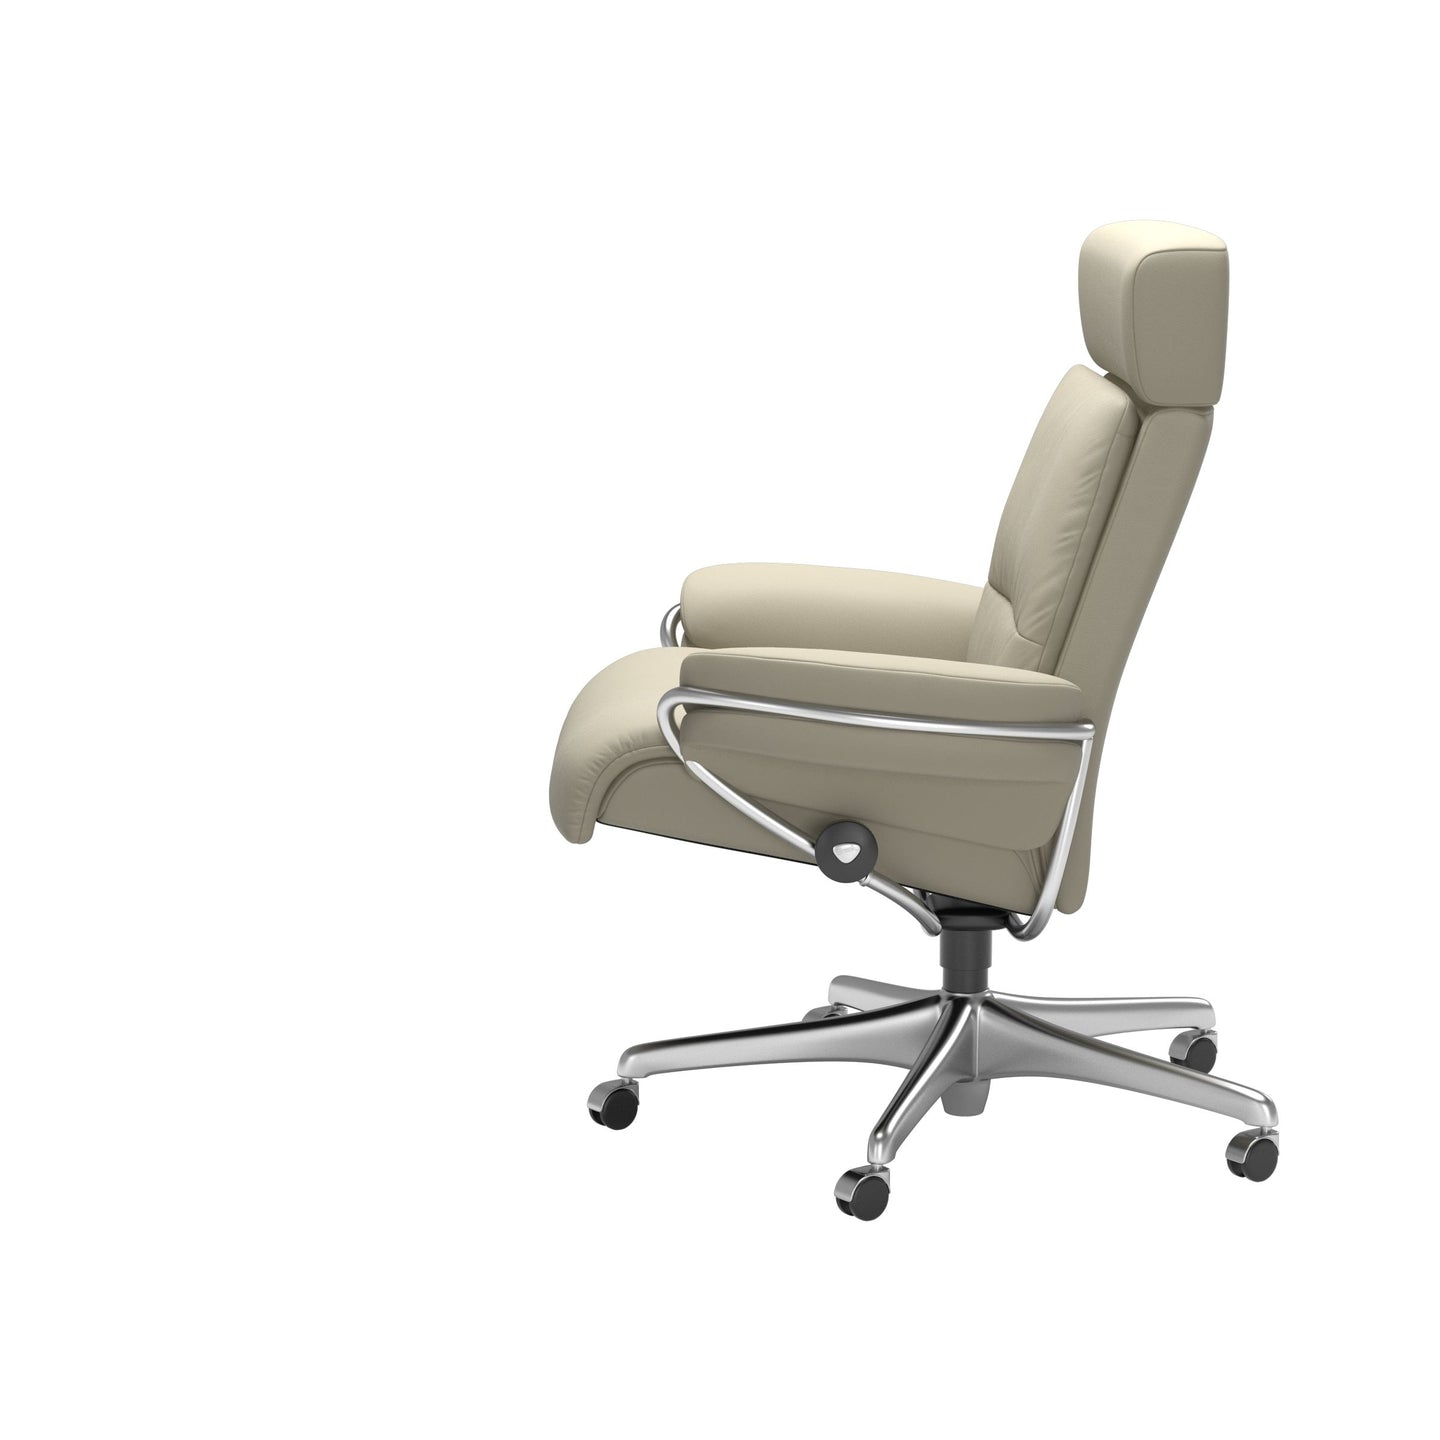 Stressless® Tokyo Office with adjustable headrest